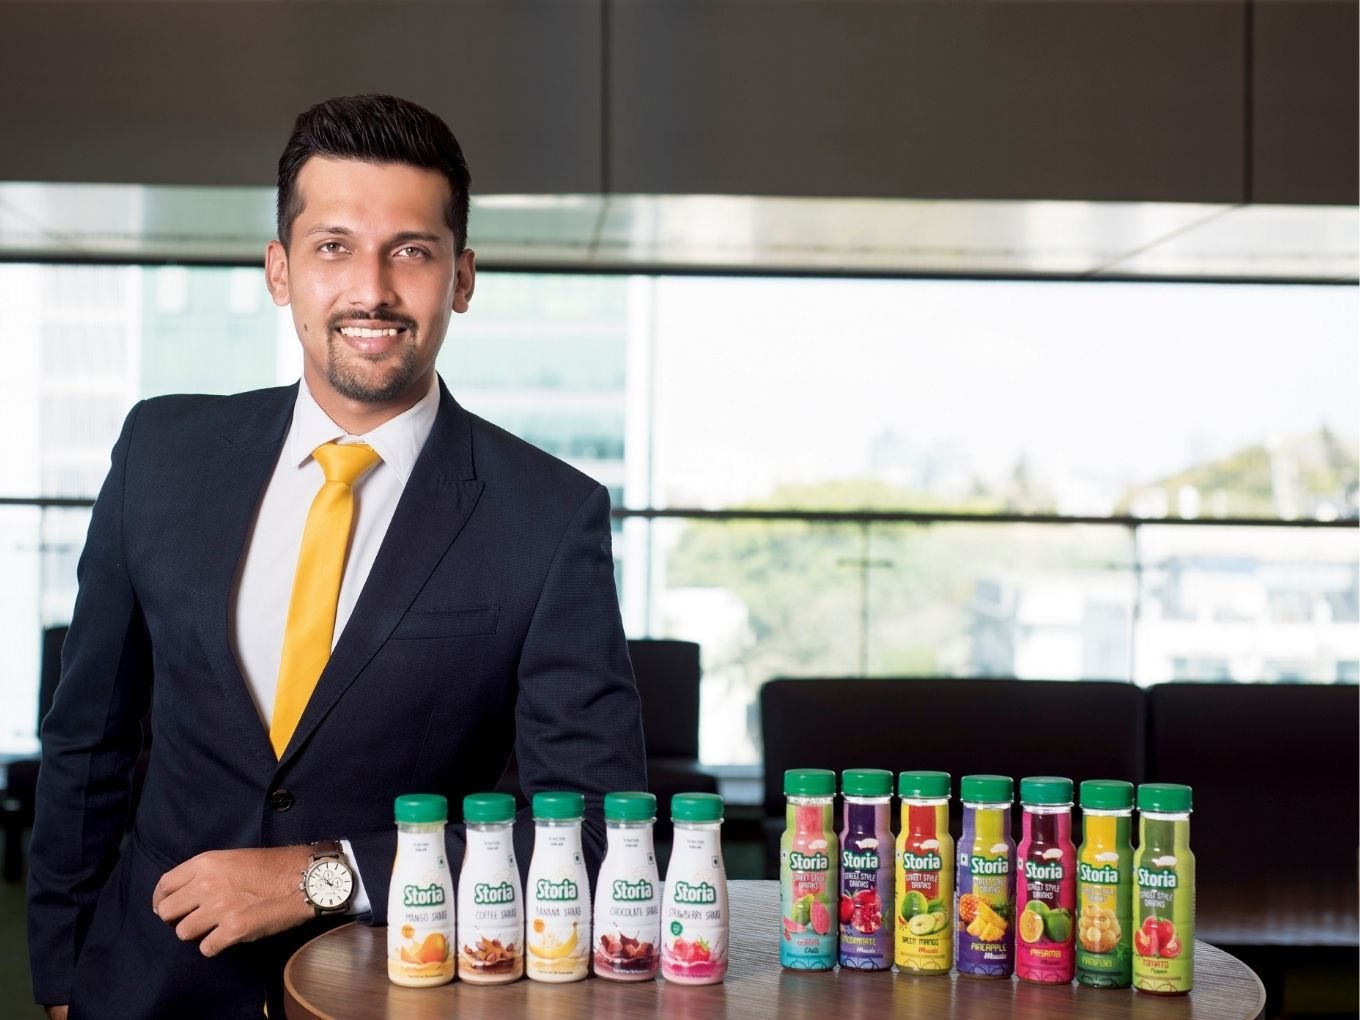 Beverages Brand Storia Raises $6 Mn Series A From Sixth Sense Ventures